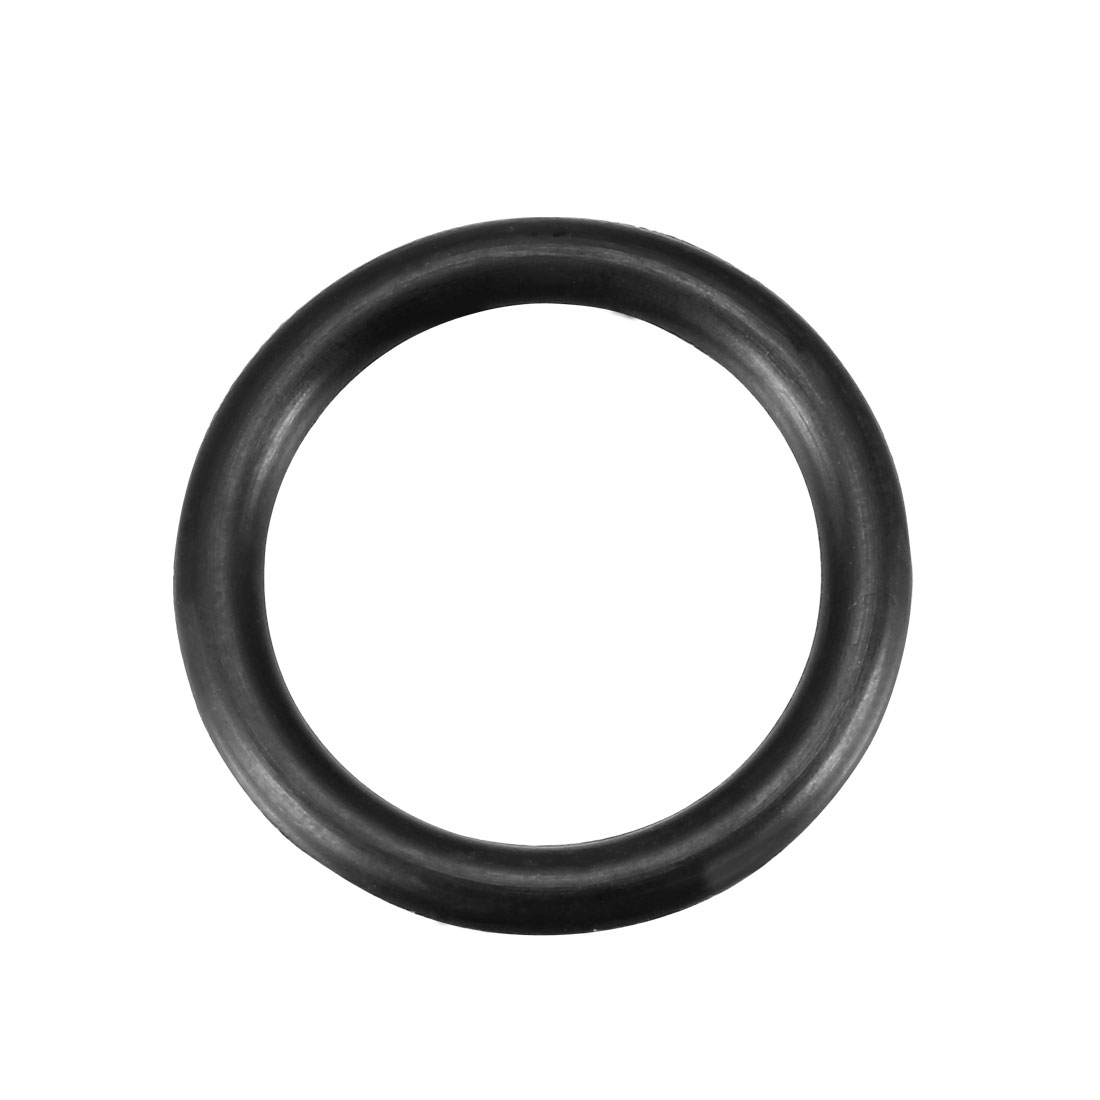 10pcs 25mm External Dia Black Rubber Oil Seal Sealing Gasket Washers O Ring